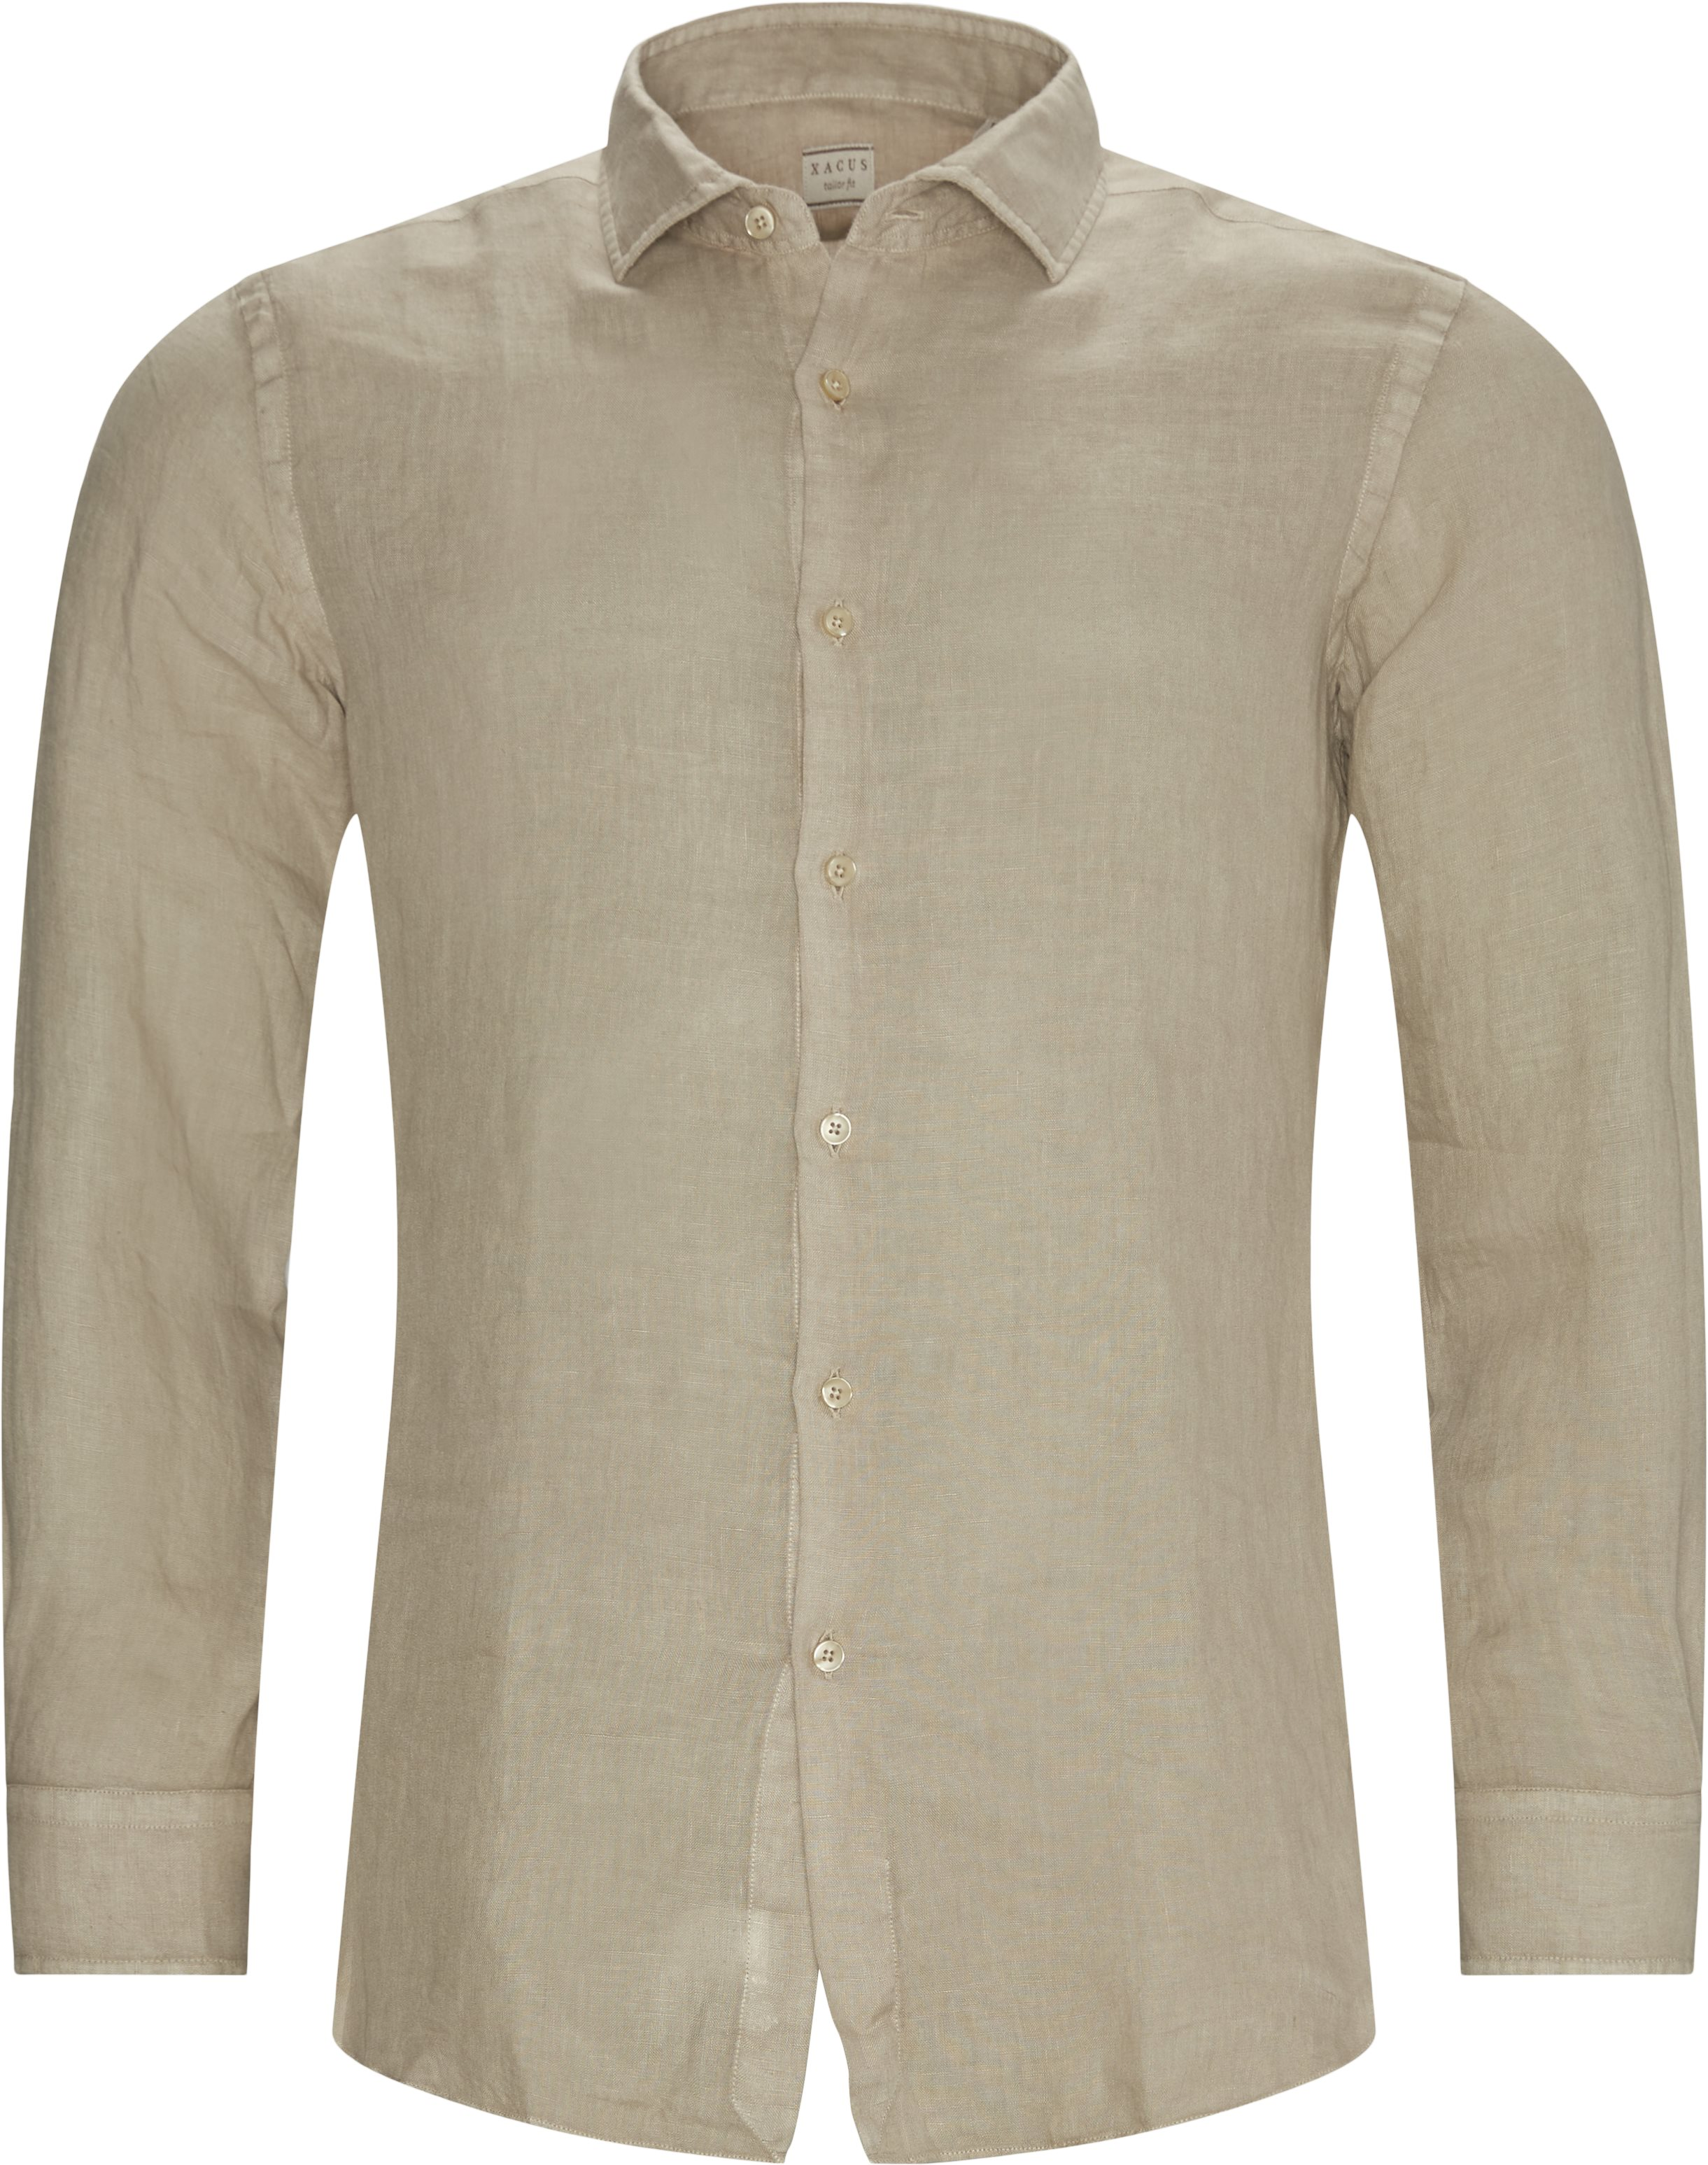 Shirts - Tailored fit - Sand